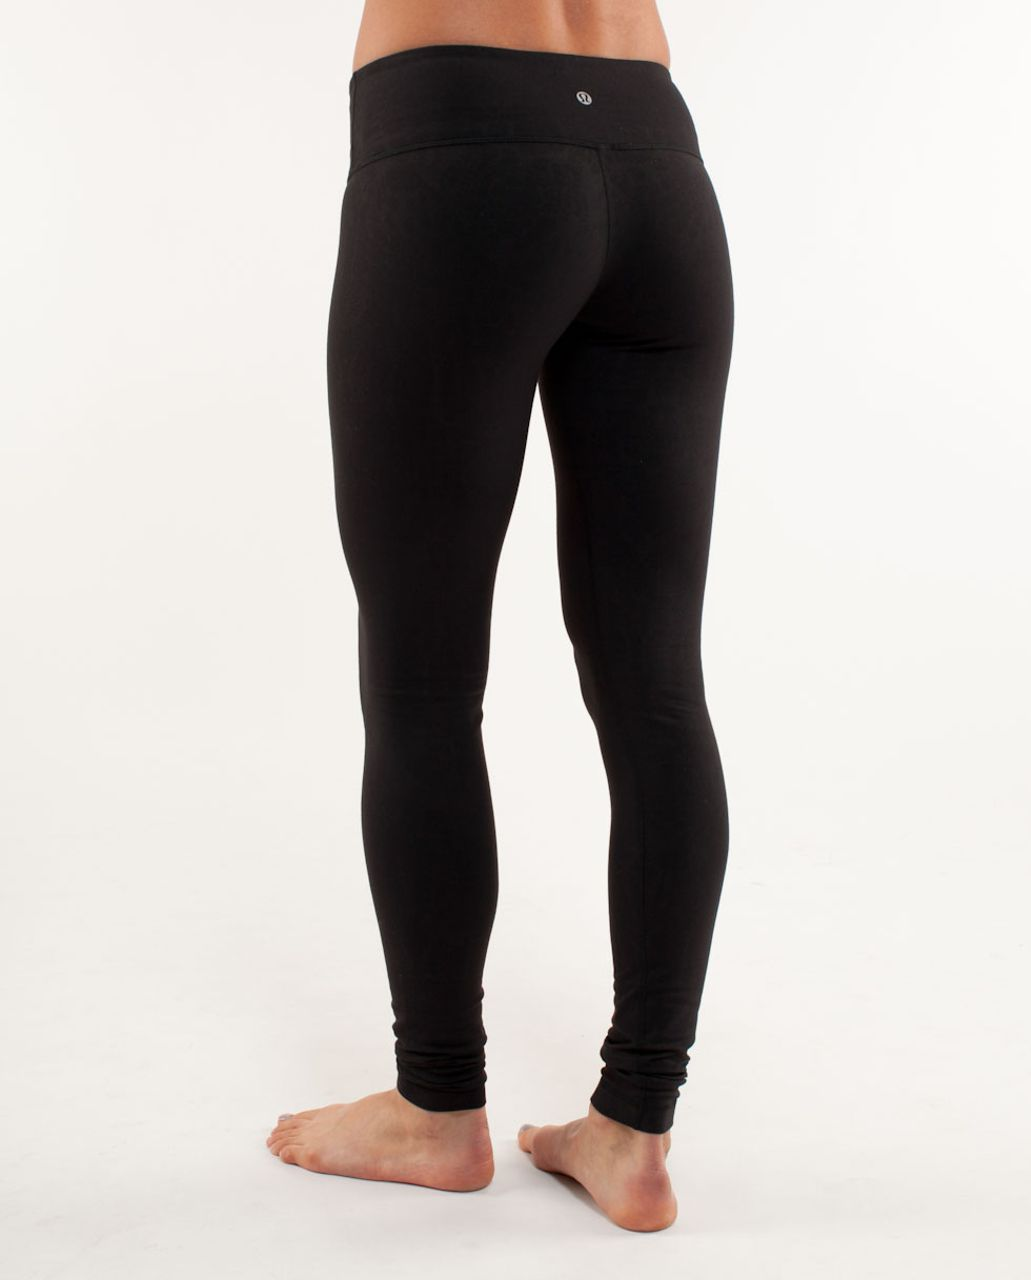 Lululemon Wunder Under Pant - Black Glacier Lace Embossed